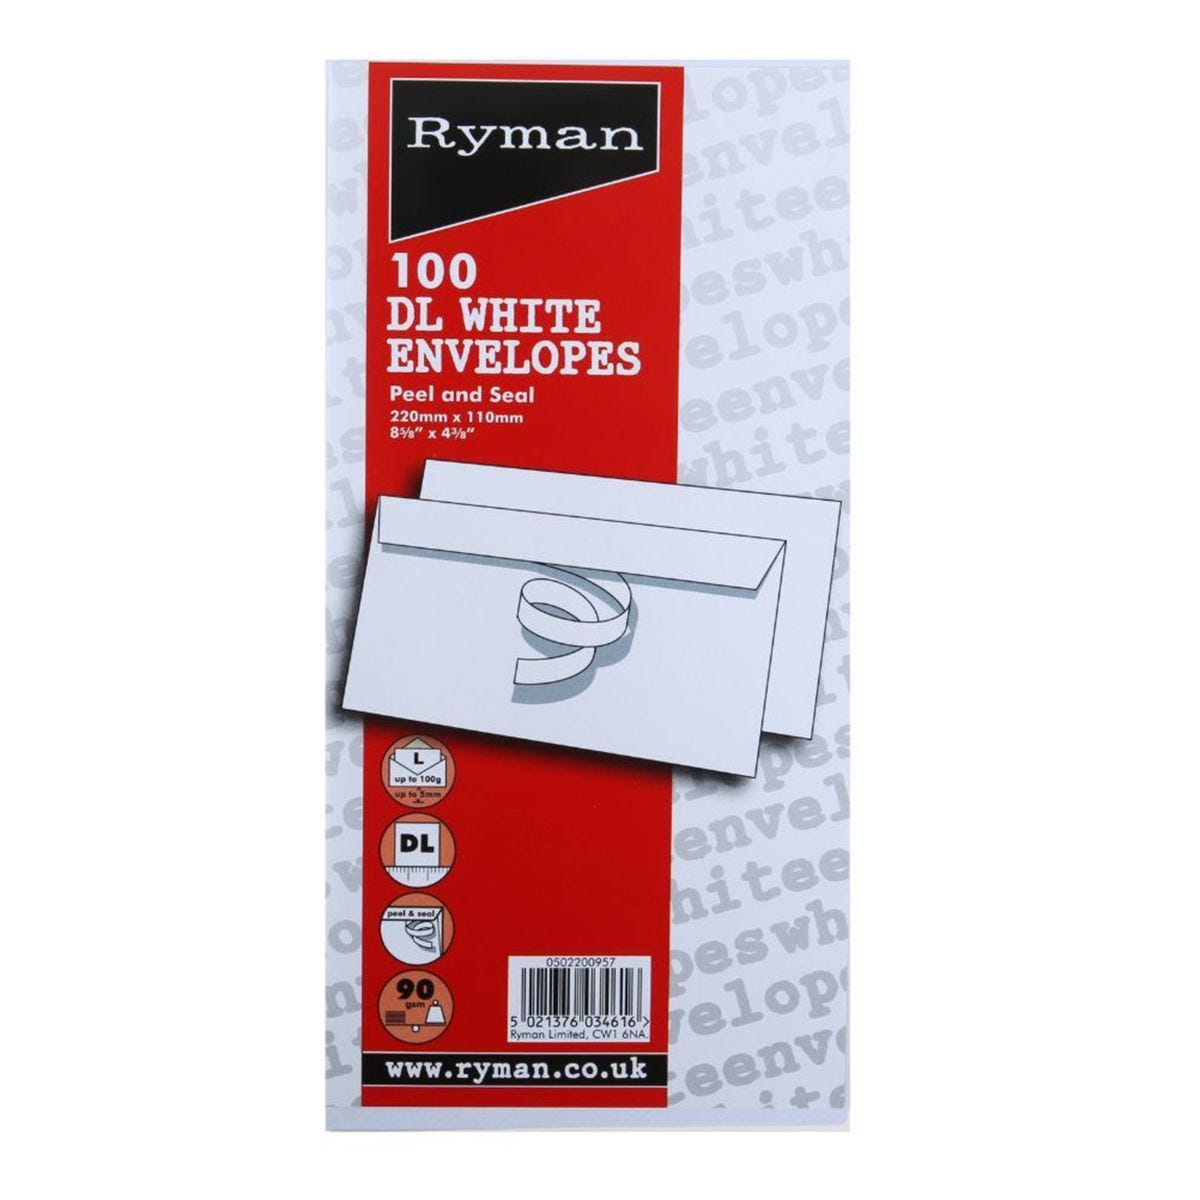 Ryman Envelopes DL 90gsm Peel and Seal - Pack of 100